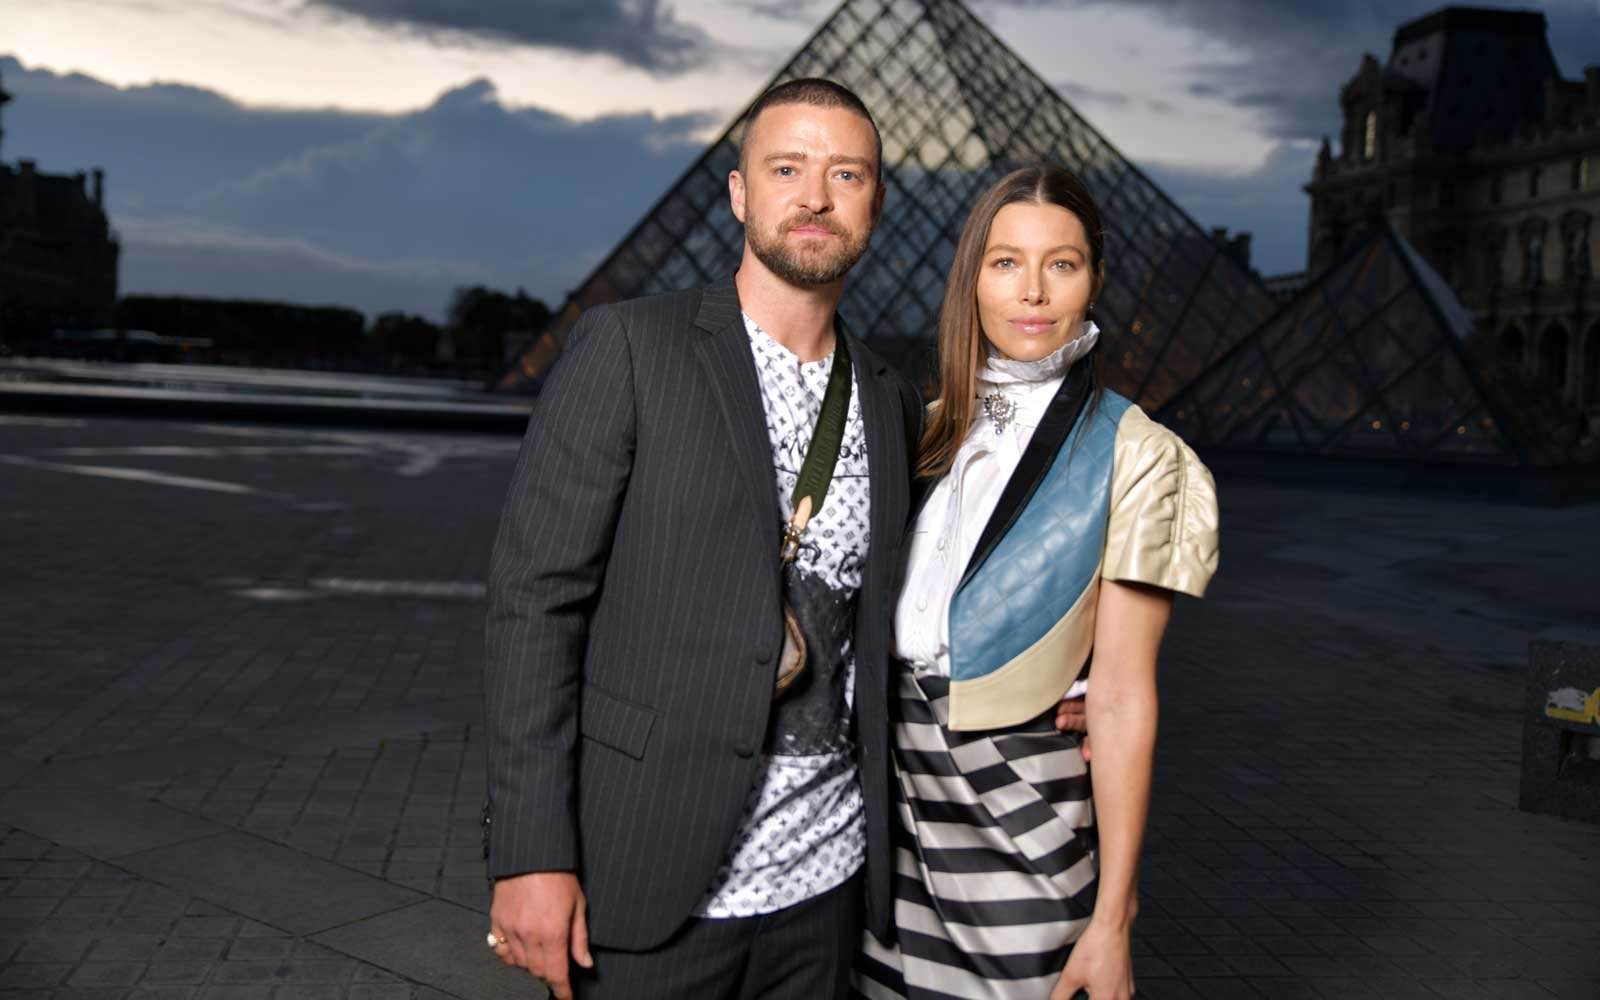 Justin Timberlake and Jessica Biel in the front row Louis Vuitton show, Front Row, Spring Summer 2020